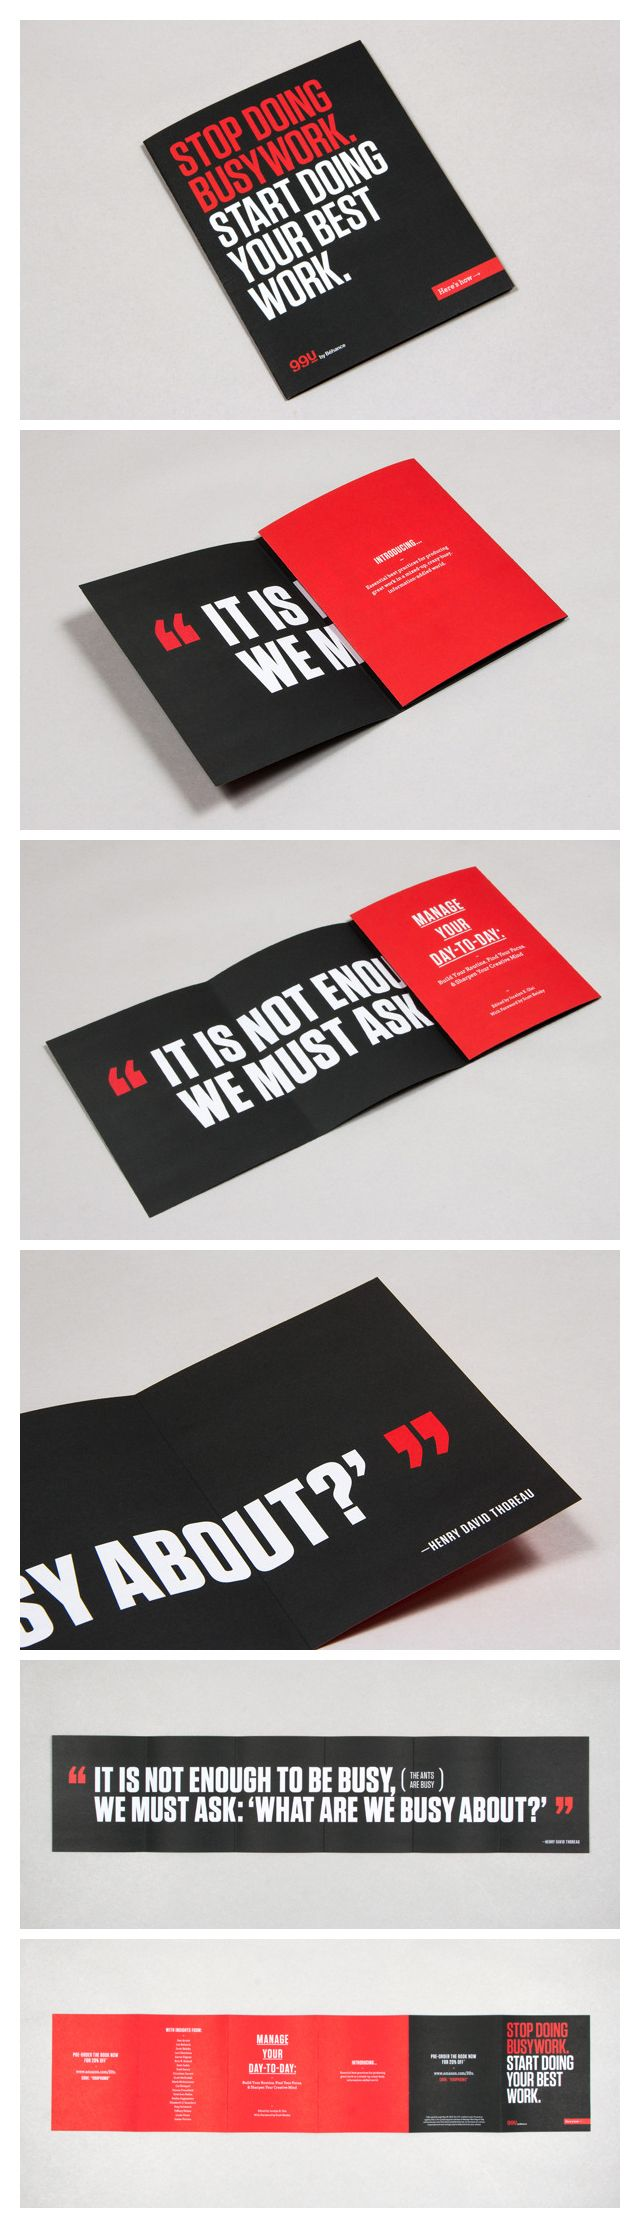 99U Book :: Fold-out Flyer/Poster